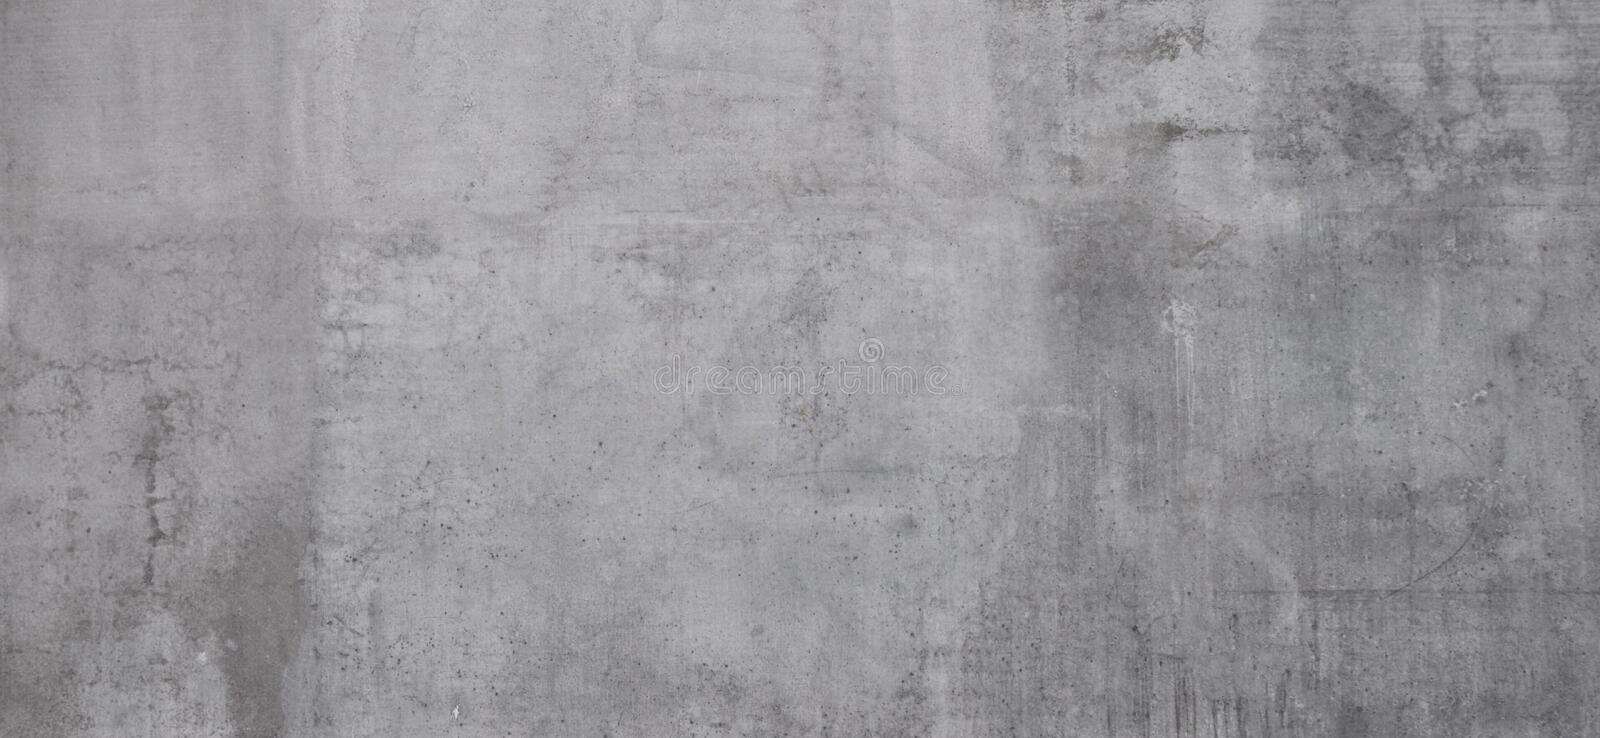 Plaster or Gypsum cement wall grunge texture background for interior or exterior design stock illustration